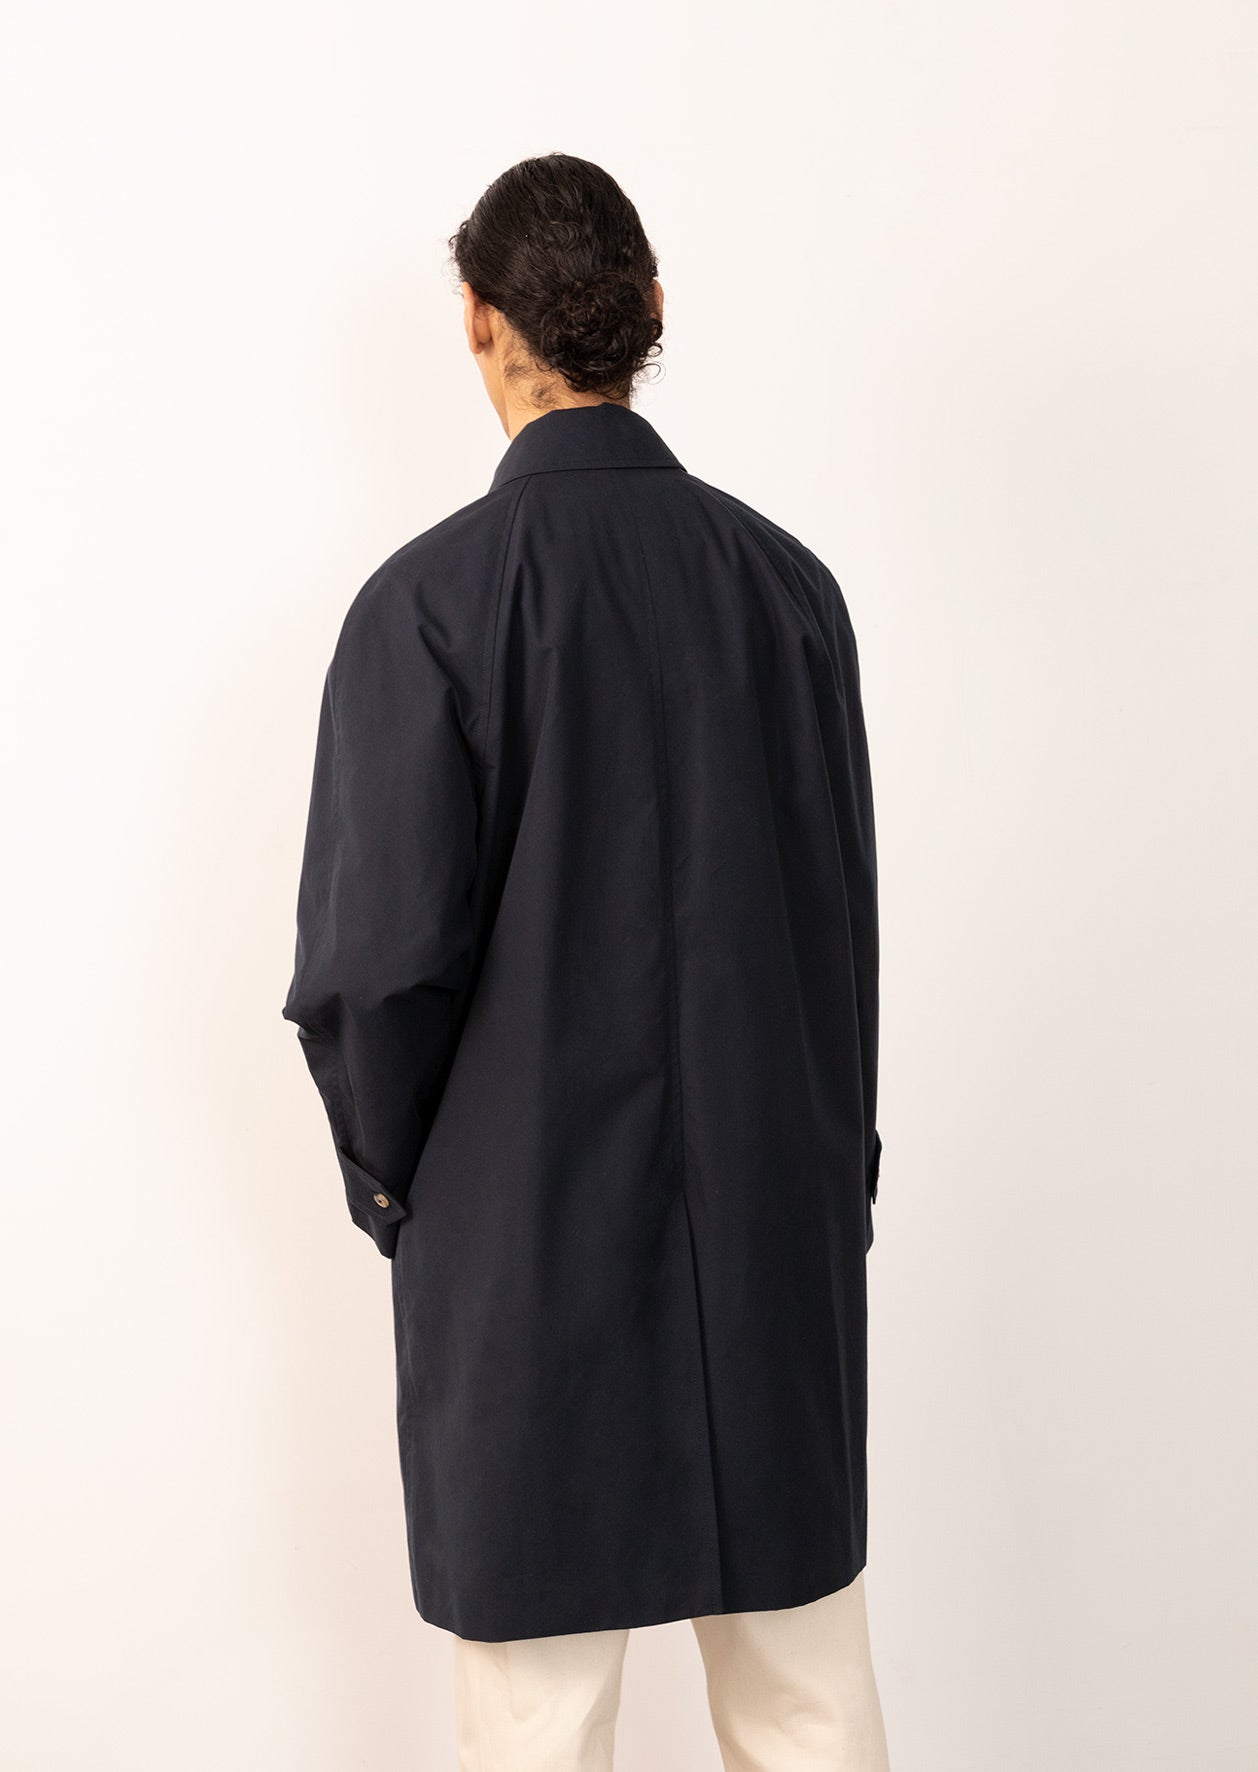 De Bonne Facture - Parisian raincoat - Organic cotton ventile® - Navy